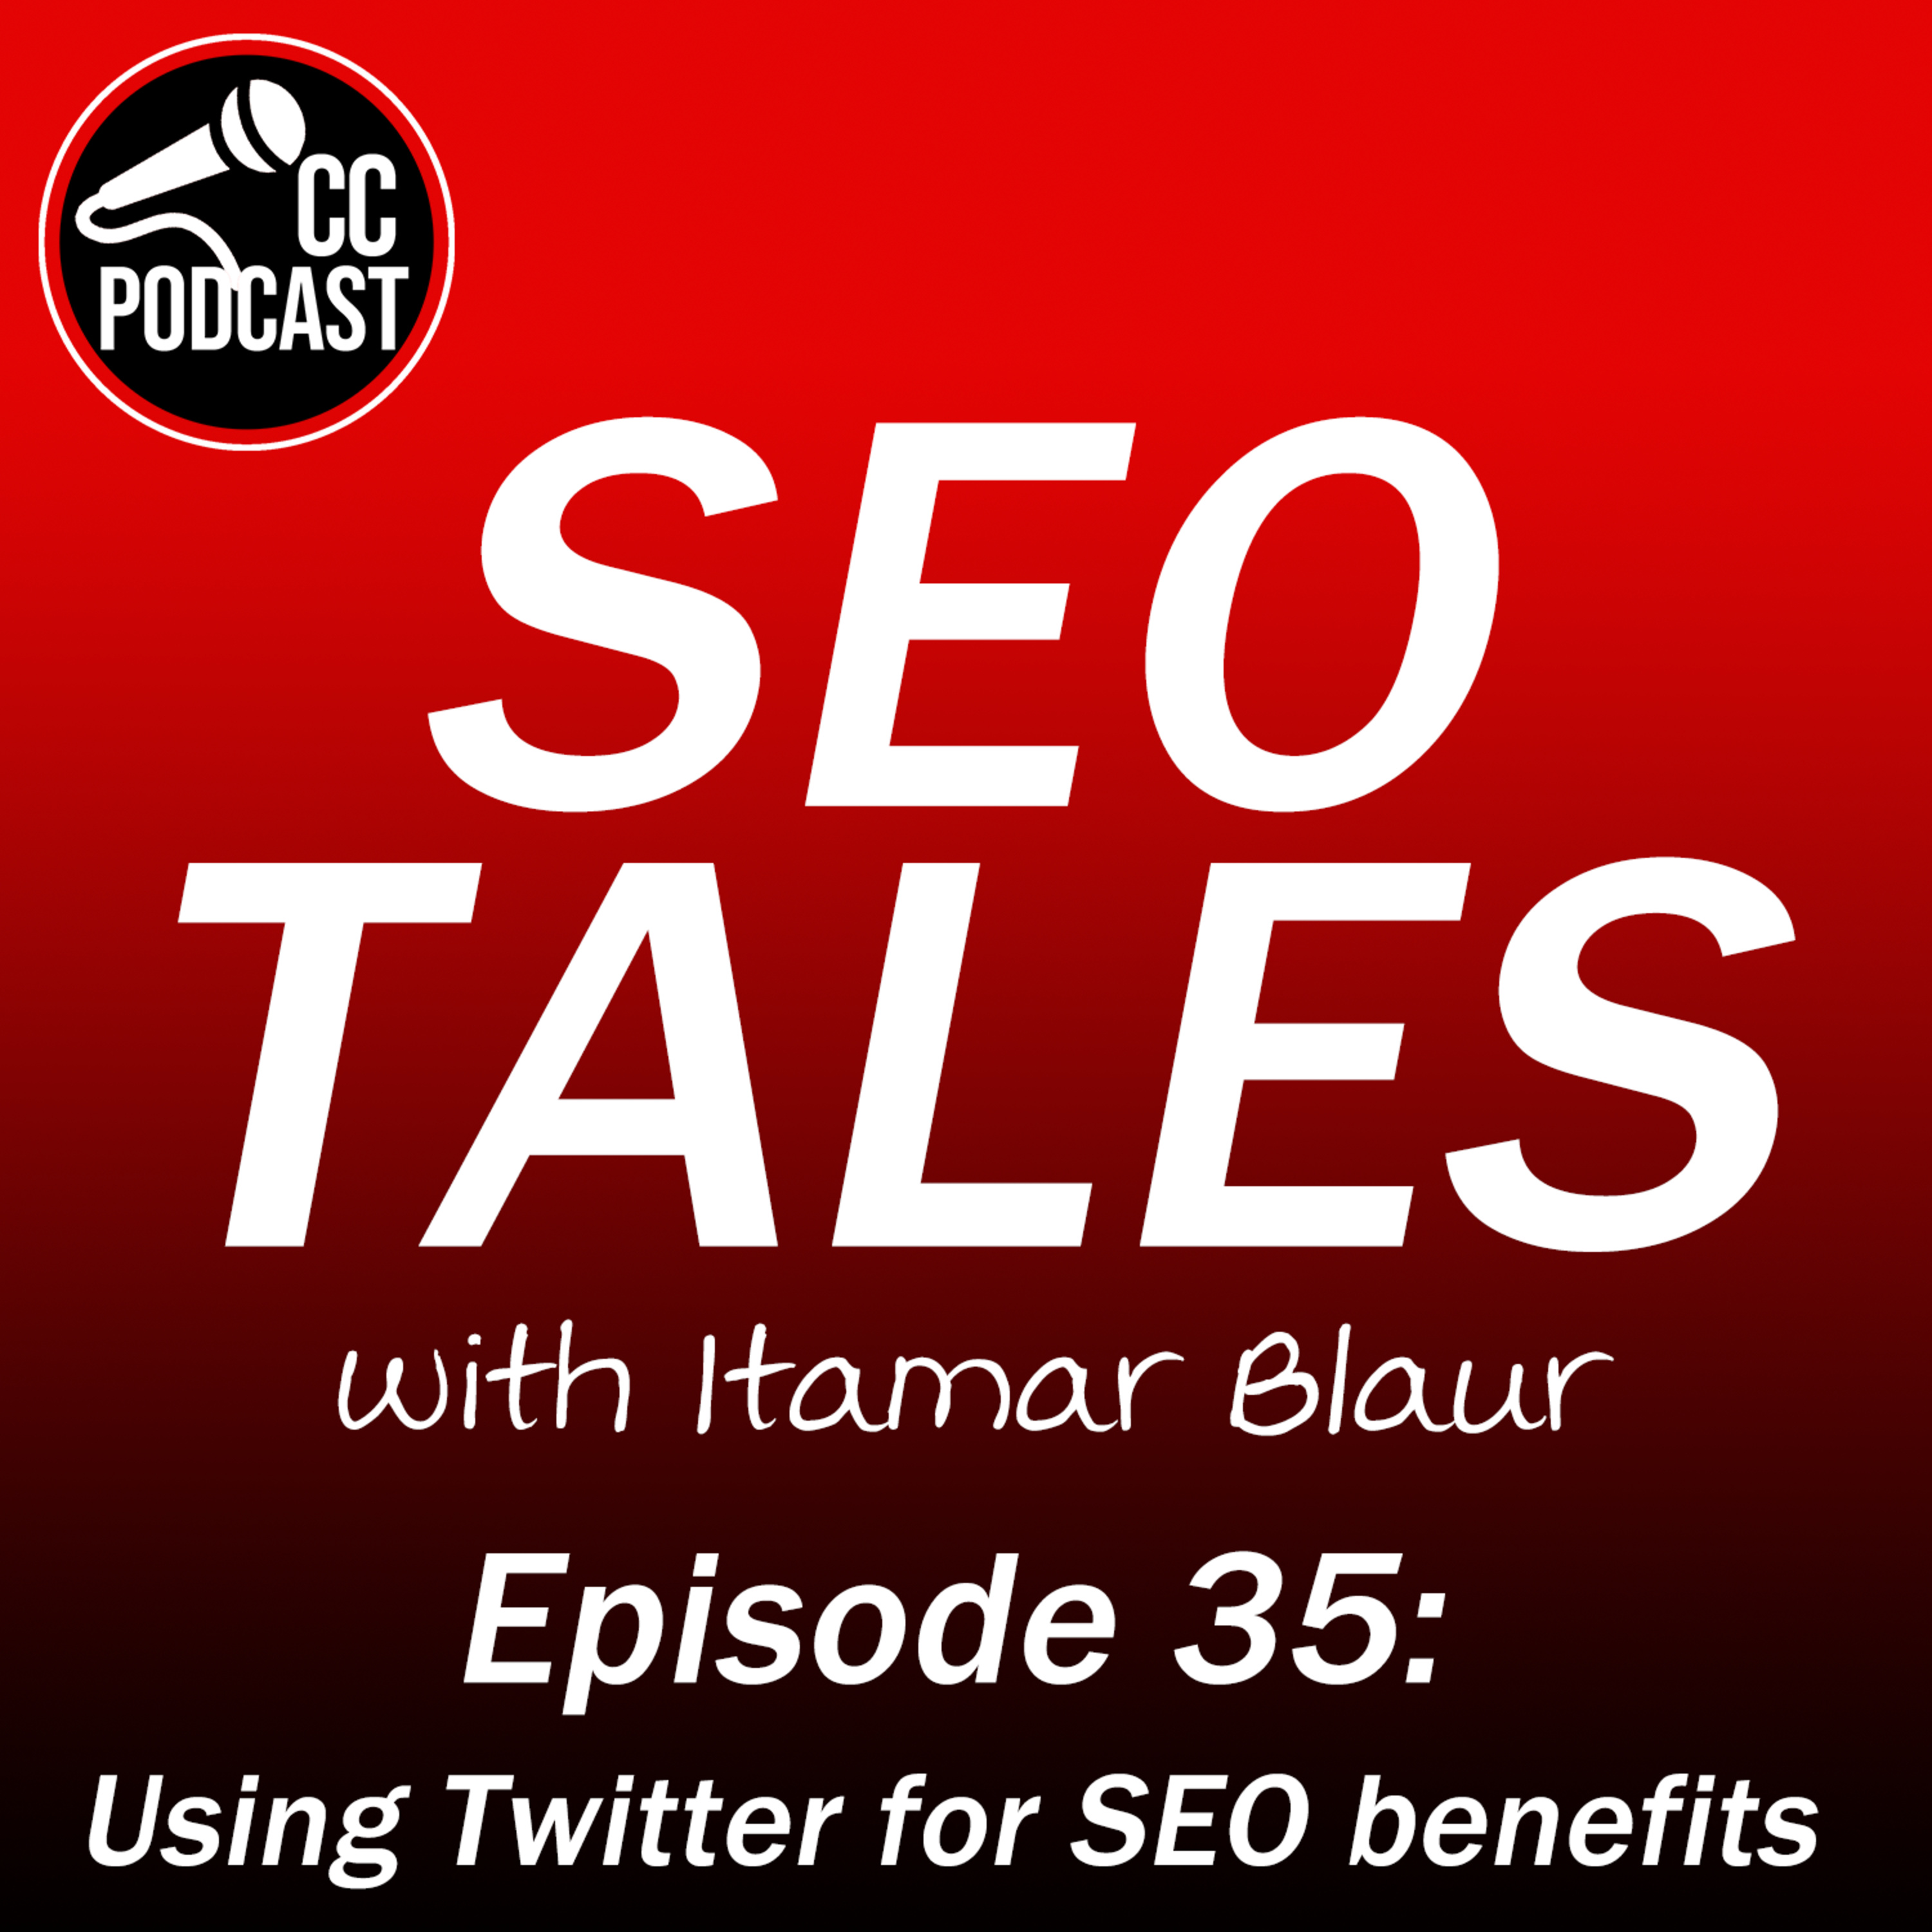 SEO Tales Episode 35 - Using Twitter for SEO benefits